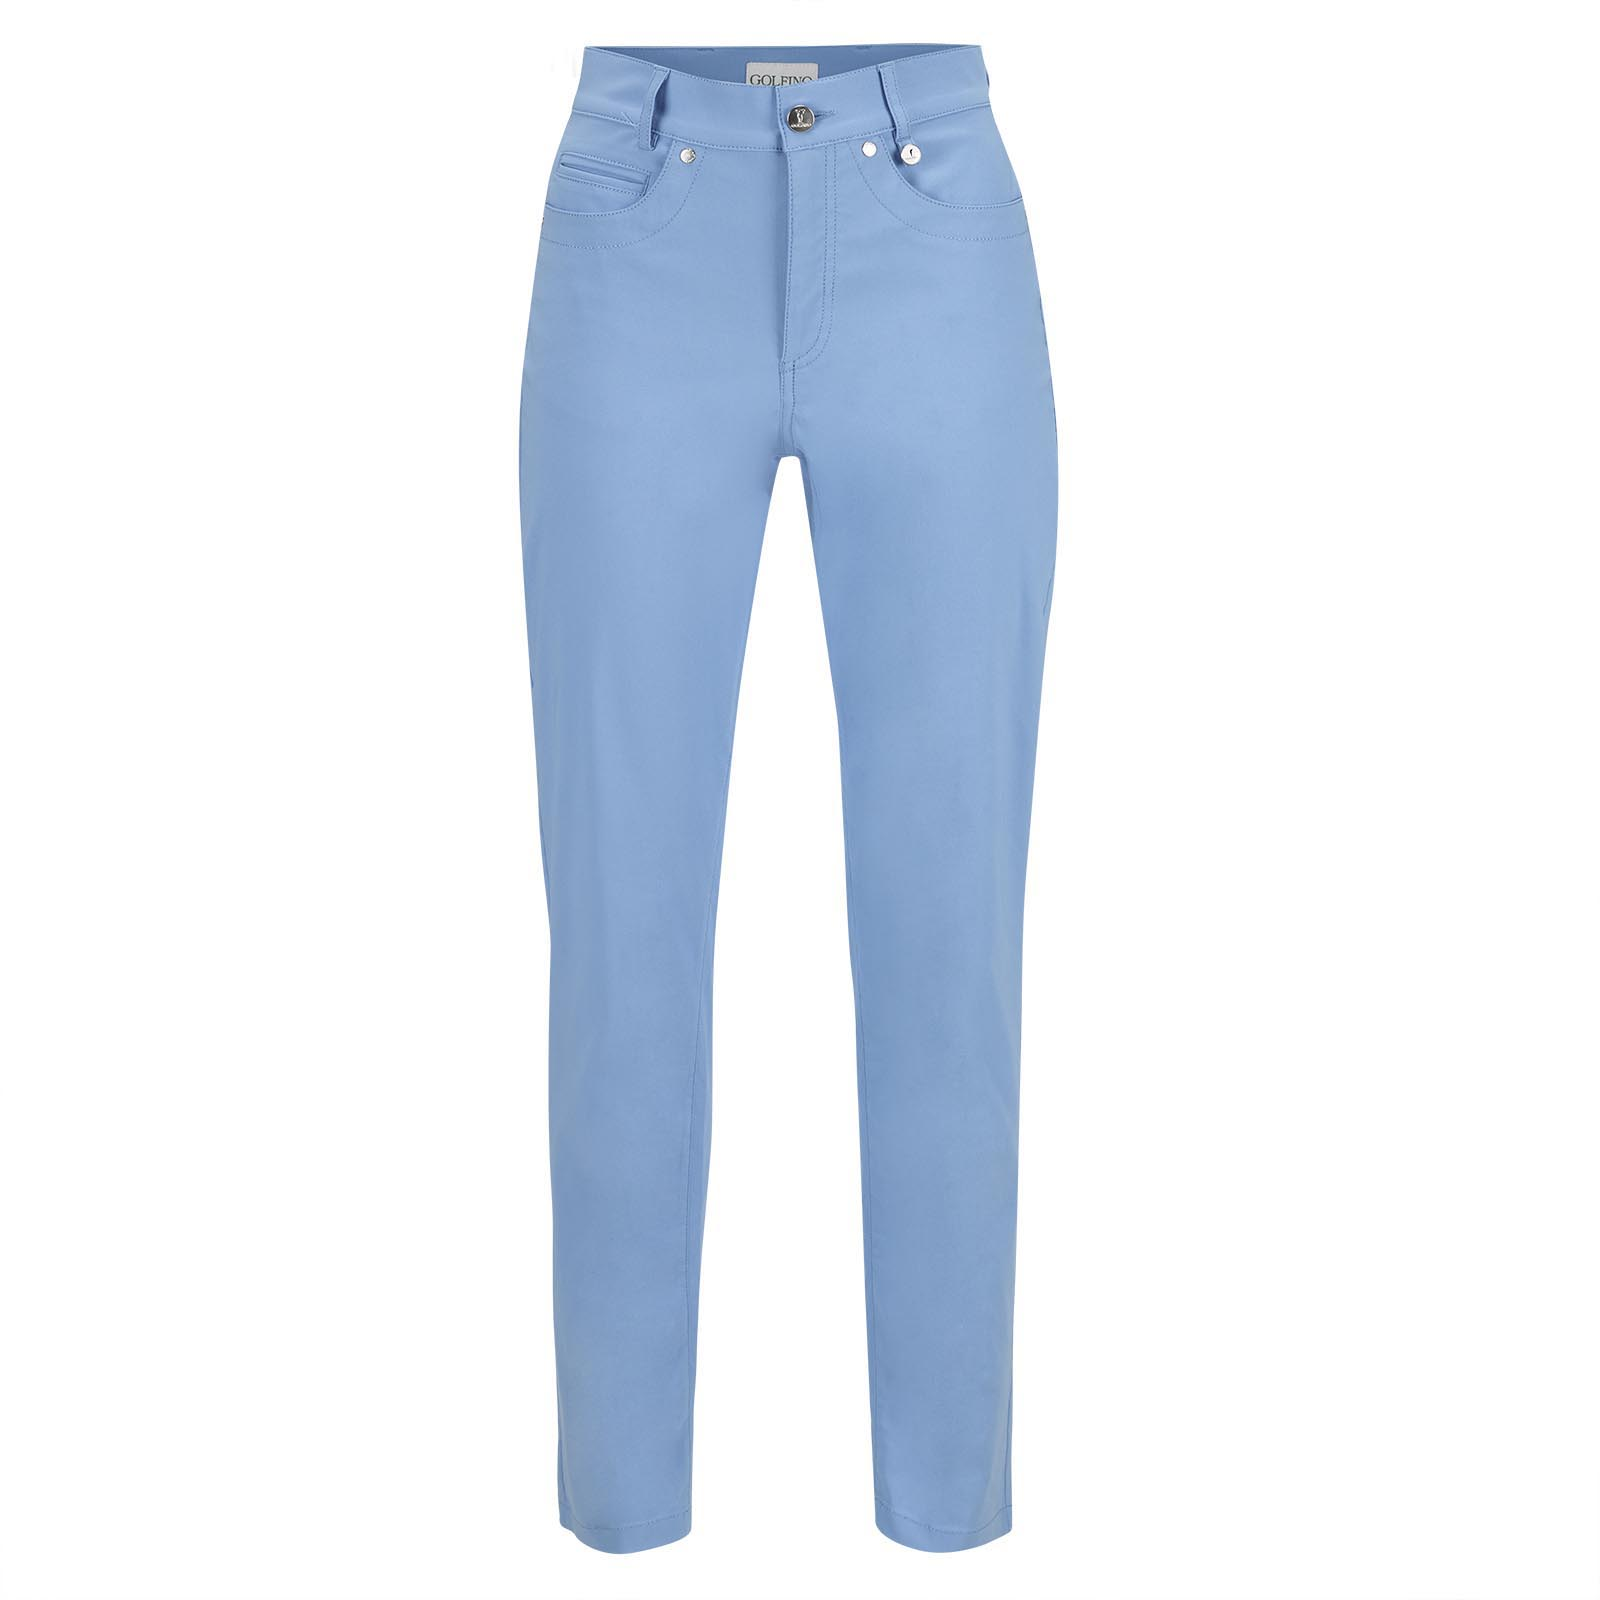 Damen Hose im Denim-Look